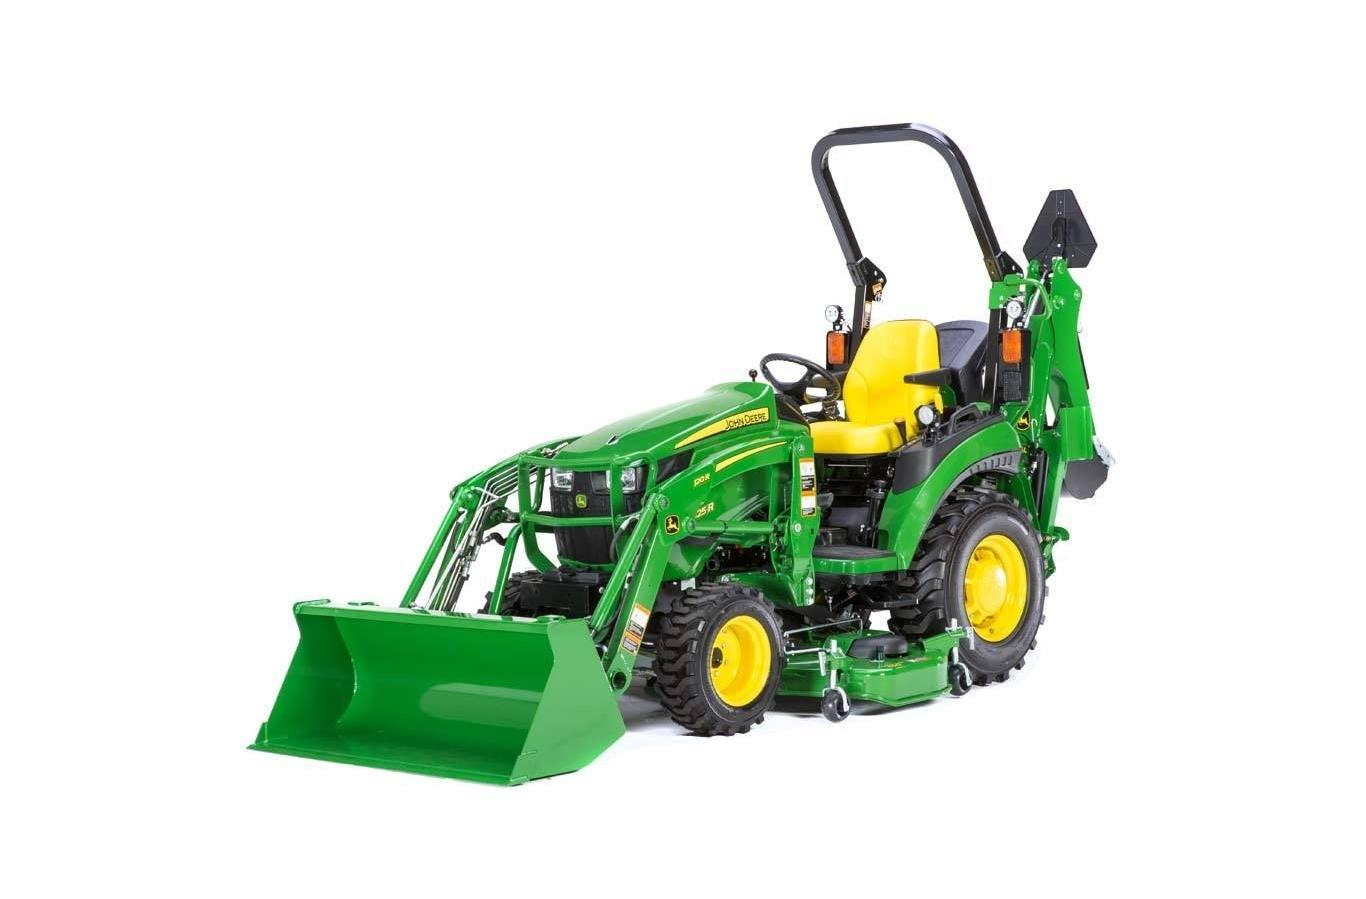 John Deere Lawn Mowers For Sale >> 2018 John Deere 2025r Tractor W 120r Loader